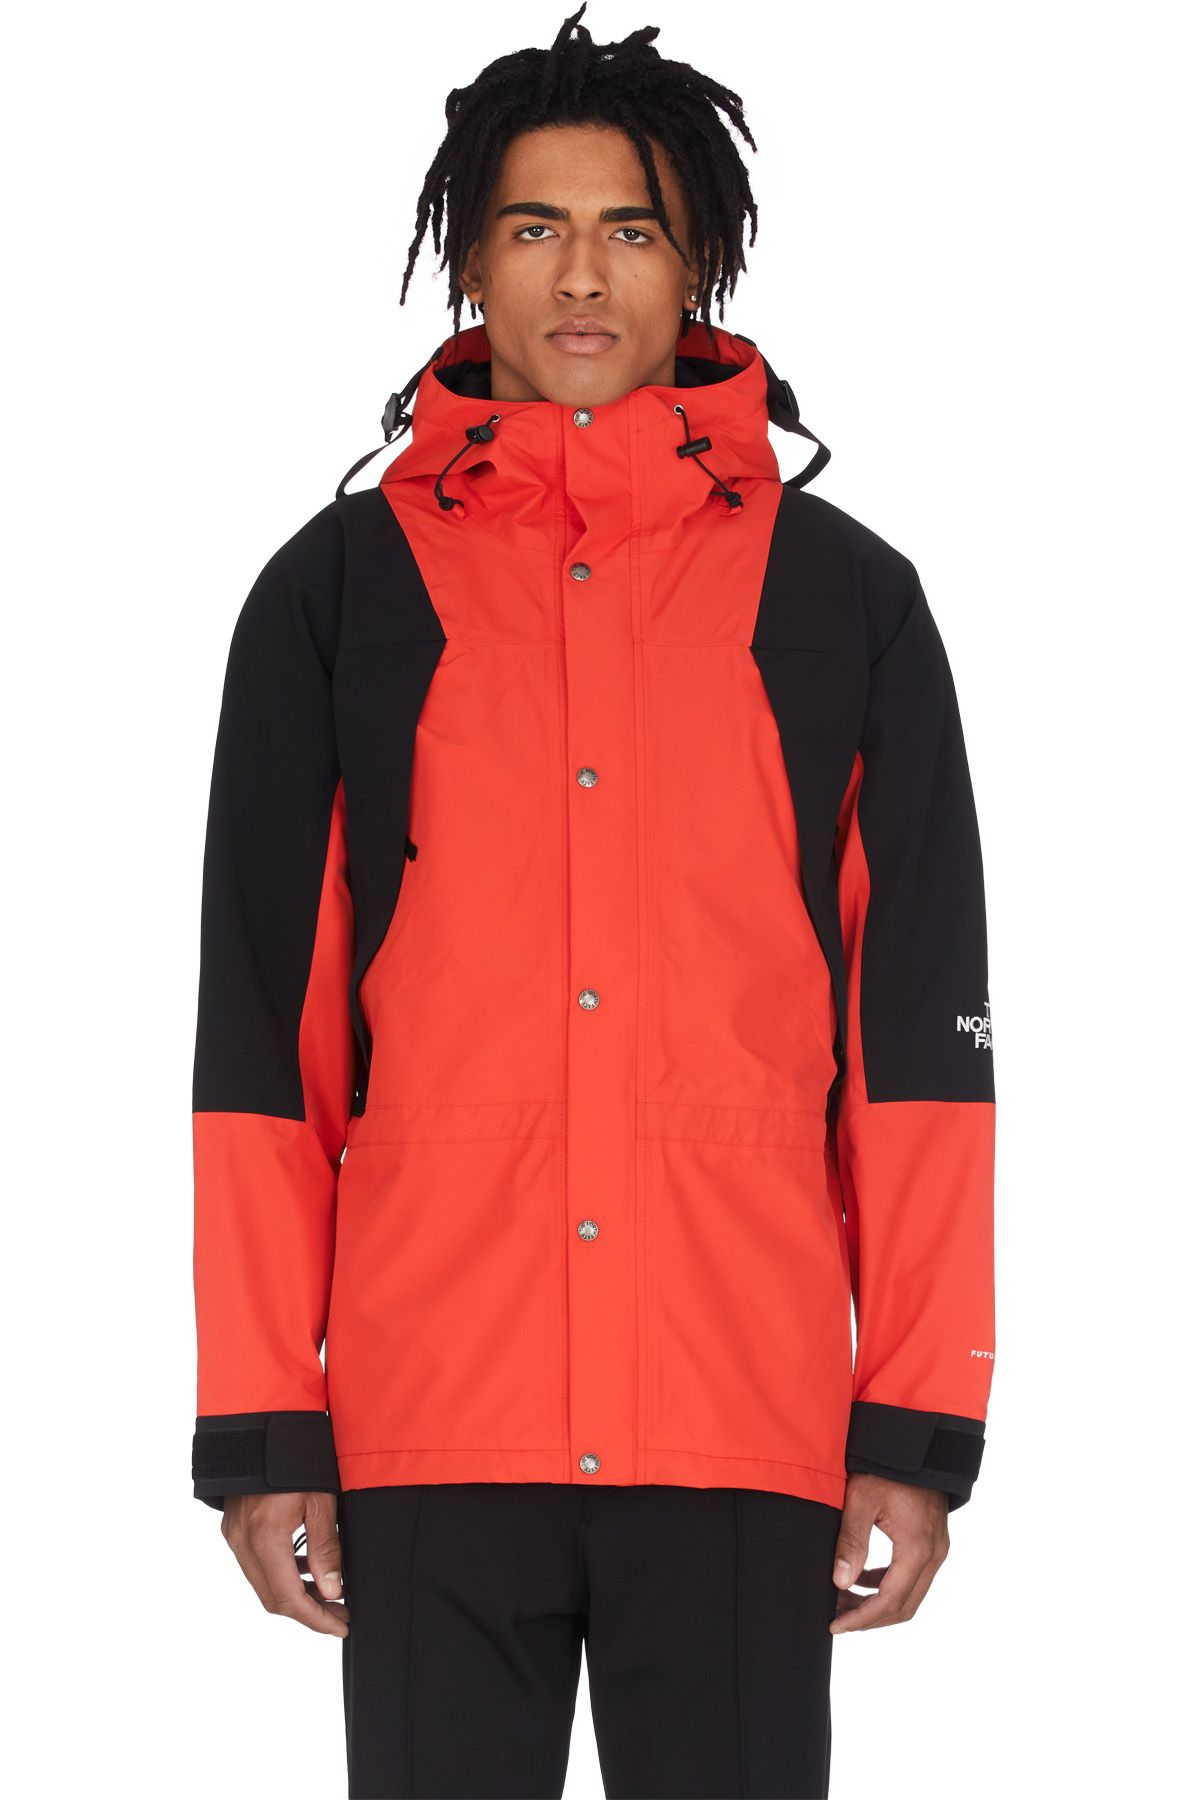 The North Face 1994 Retro Mountain Light Futurelight Jacket Firey Red Jackets The North Face North Face Jacket [ 1800 x 1200 Pixel ]